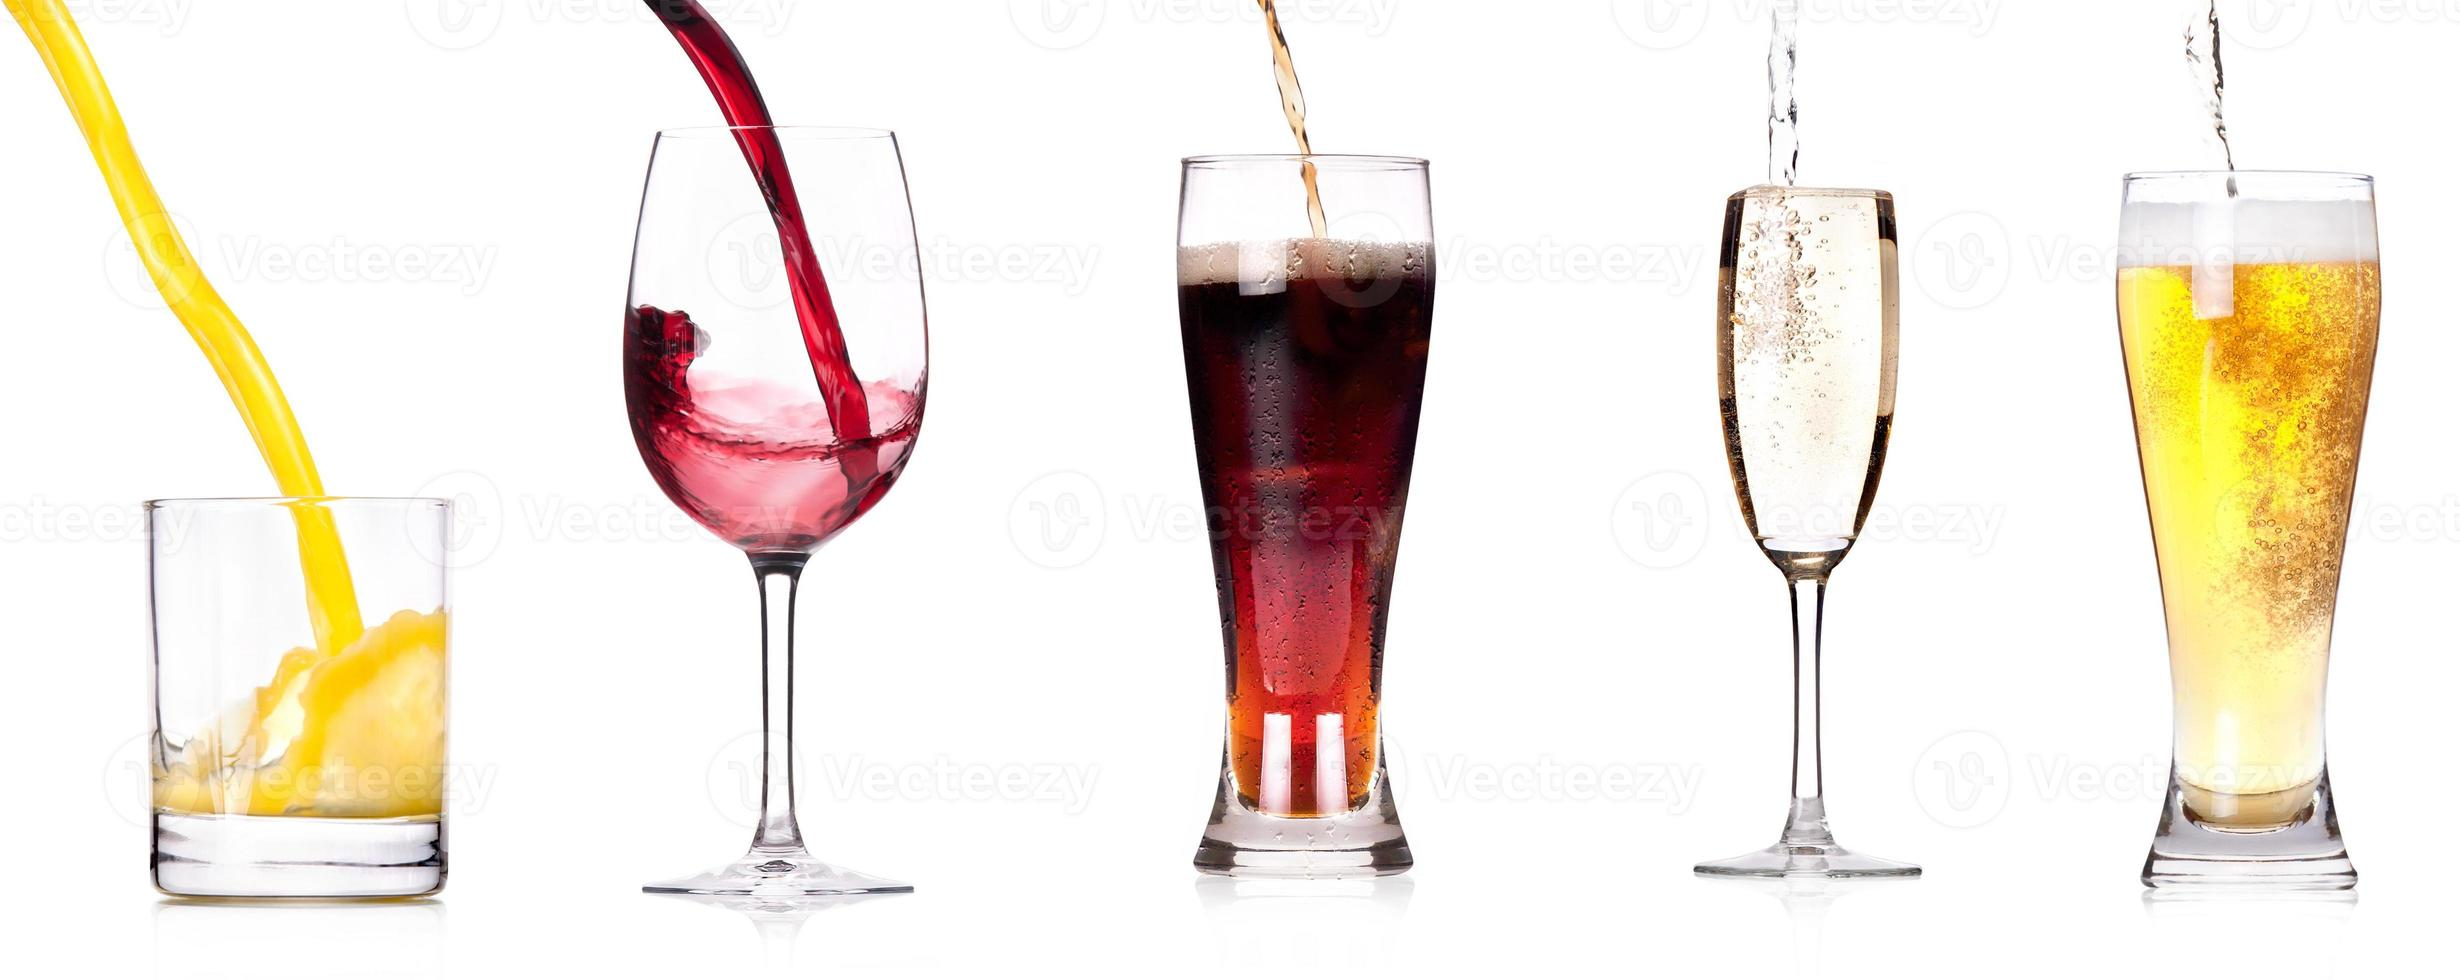 Pouring Beverages photo